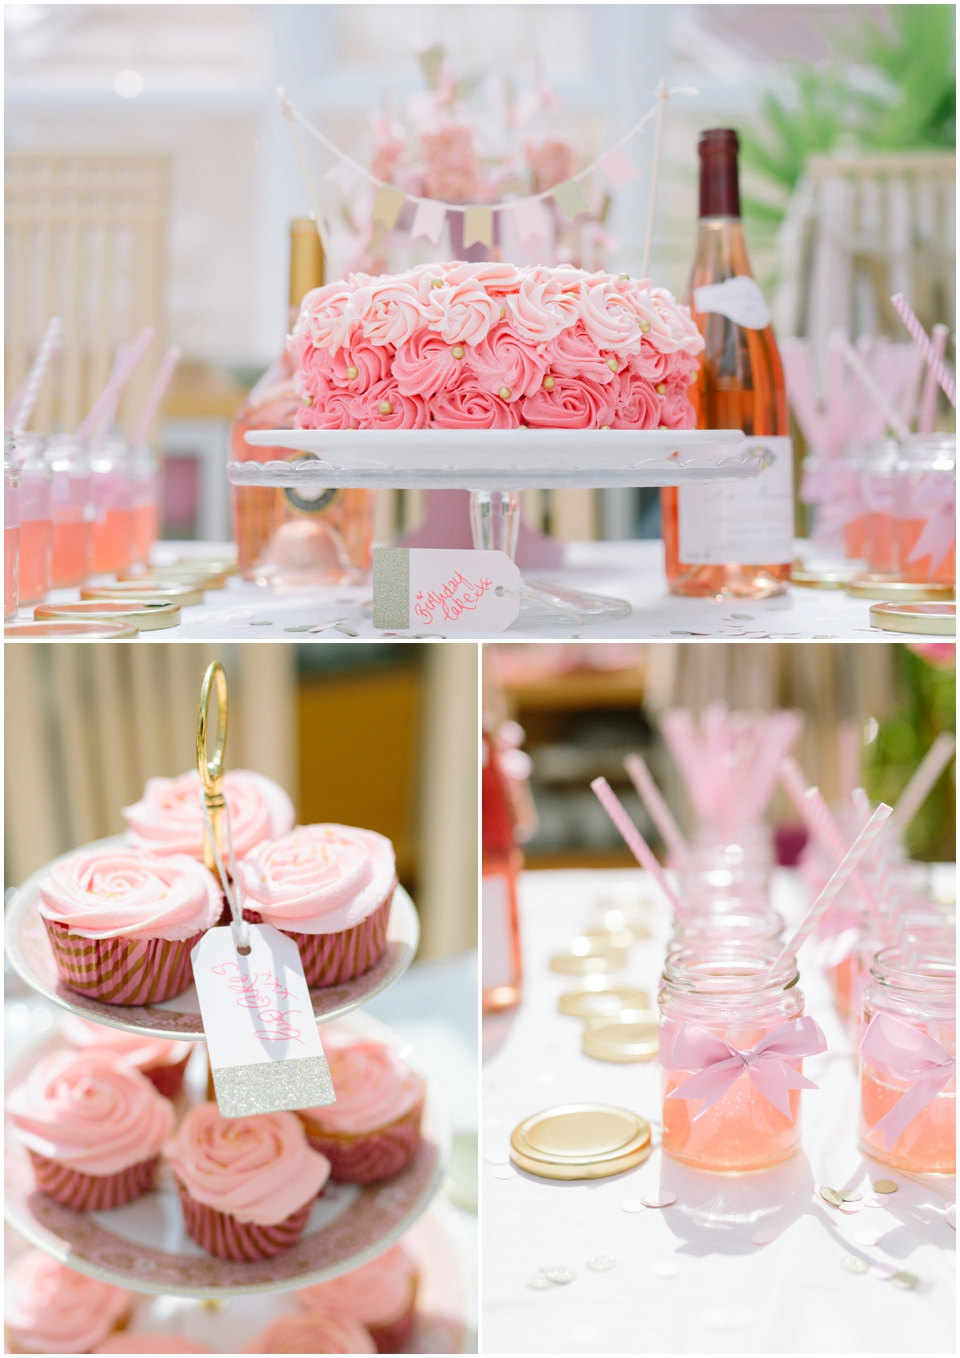 suzanne_li_photography_lotti_birthday_0018.jpg